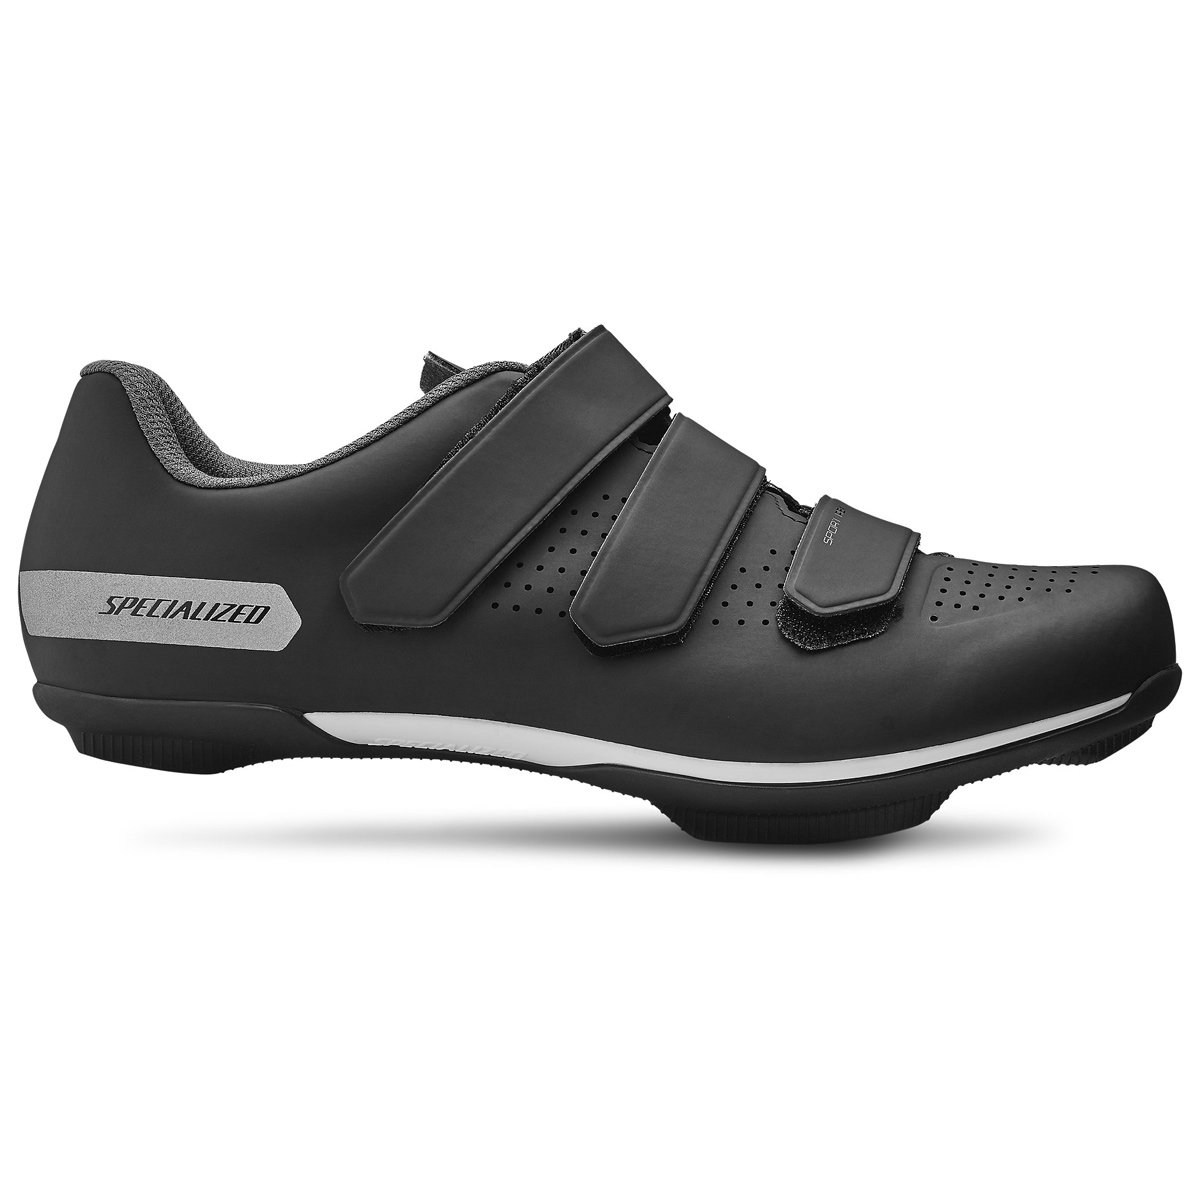 CHAUSSURES SPECIALIZED SPORT RBX